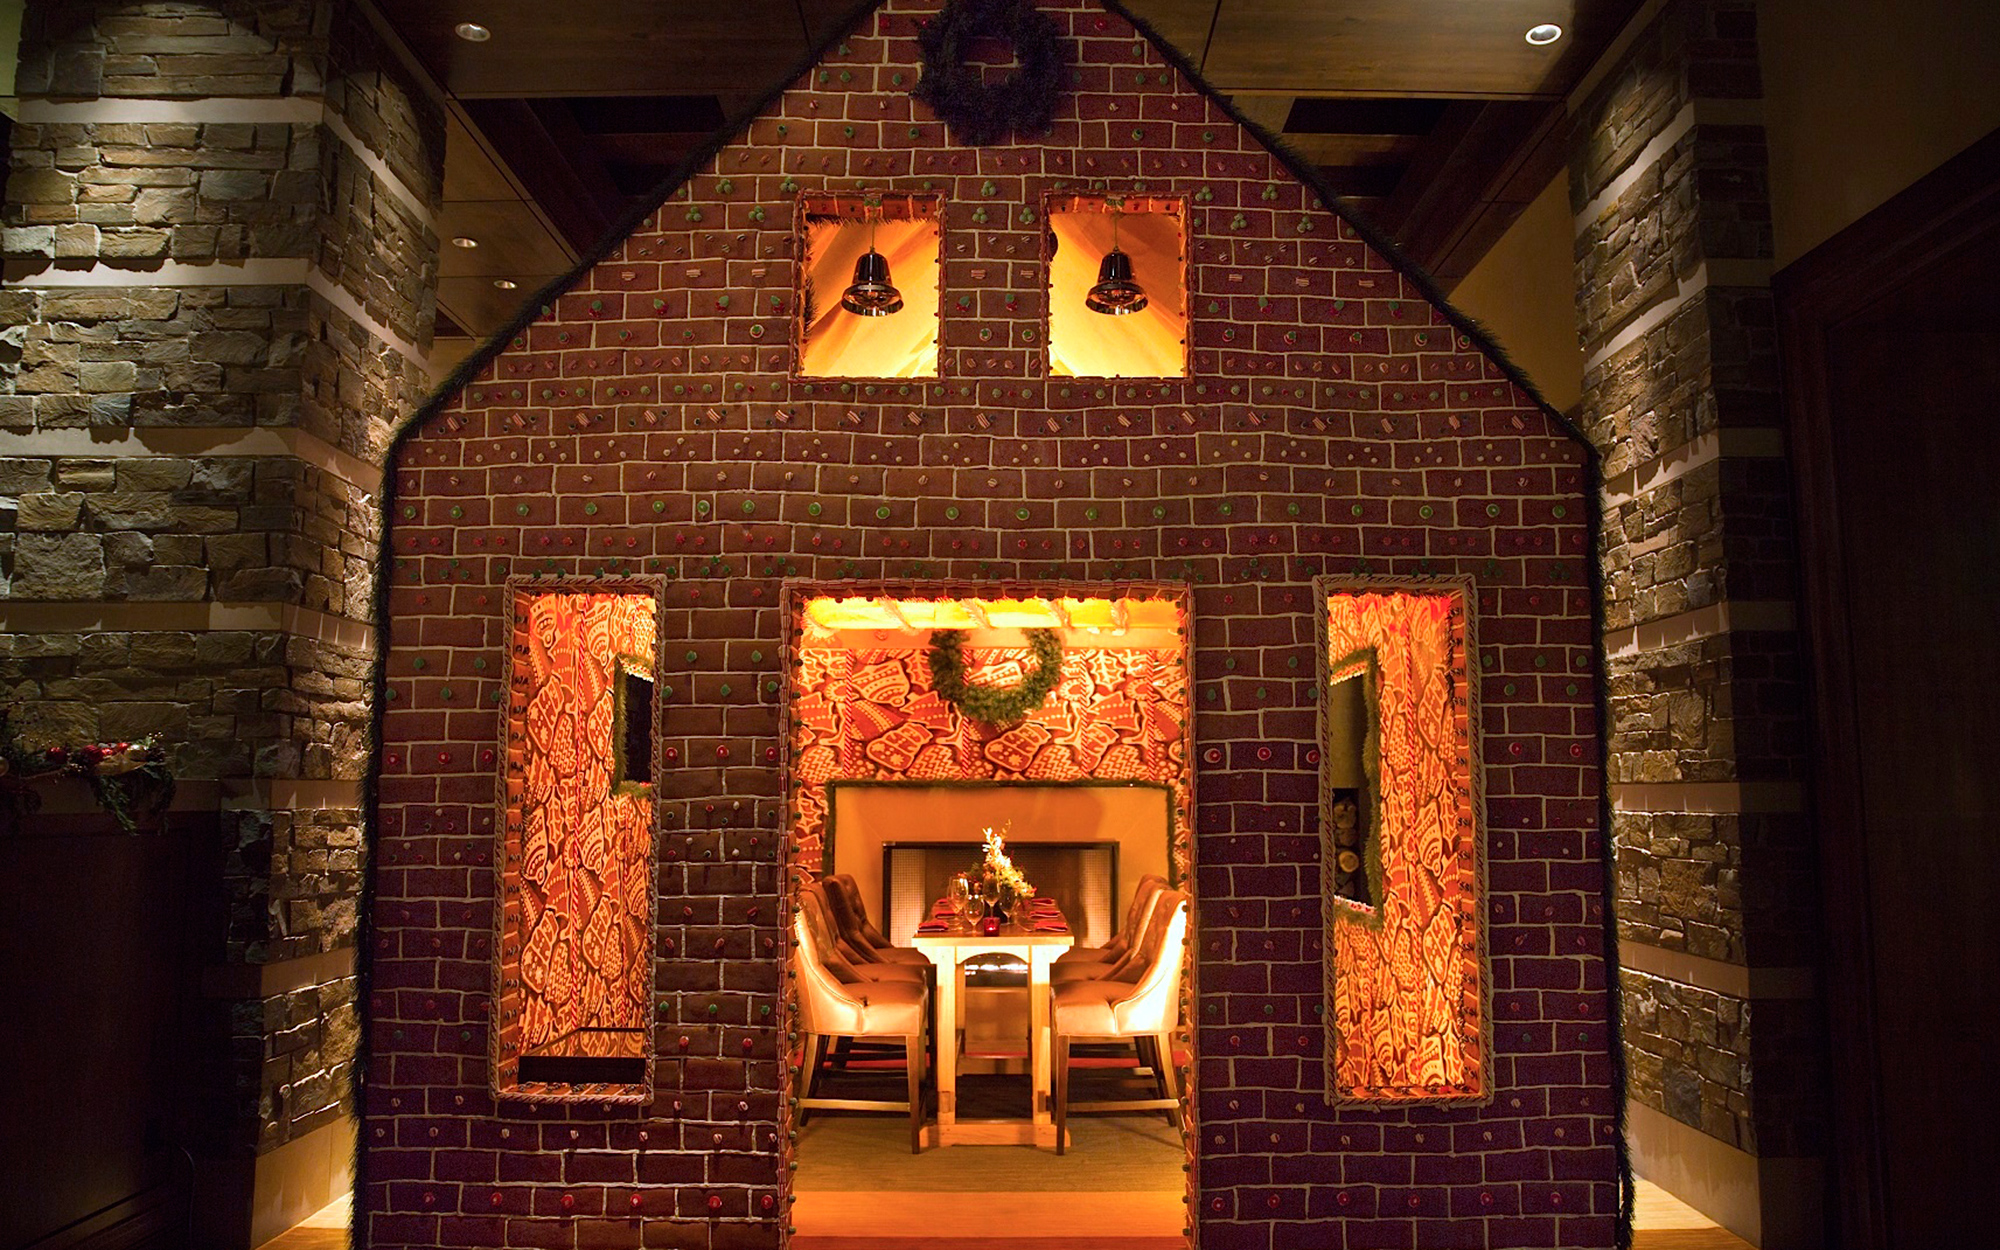 The Best Hotel Gingerbread Houses: The Ritz-Carlton, Dove Mountain, Arizona